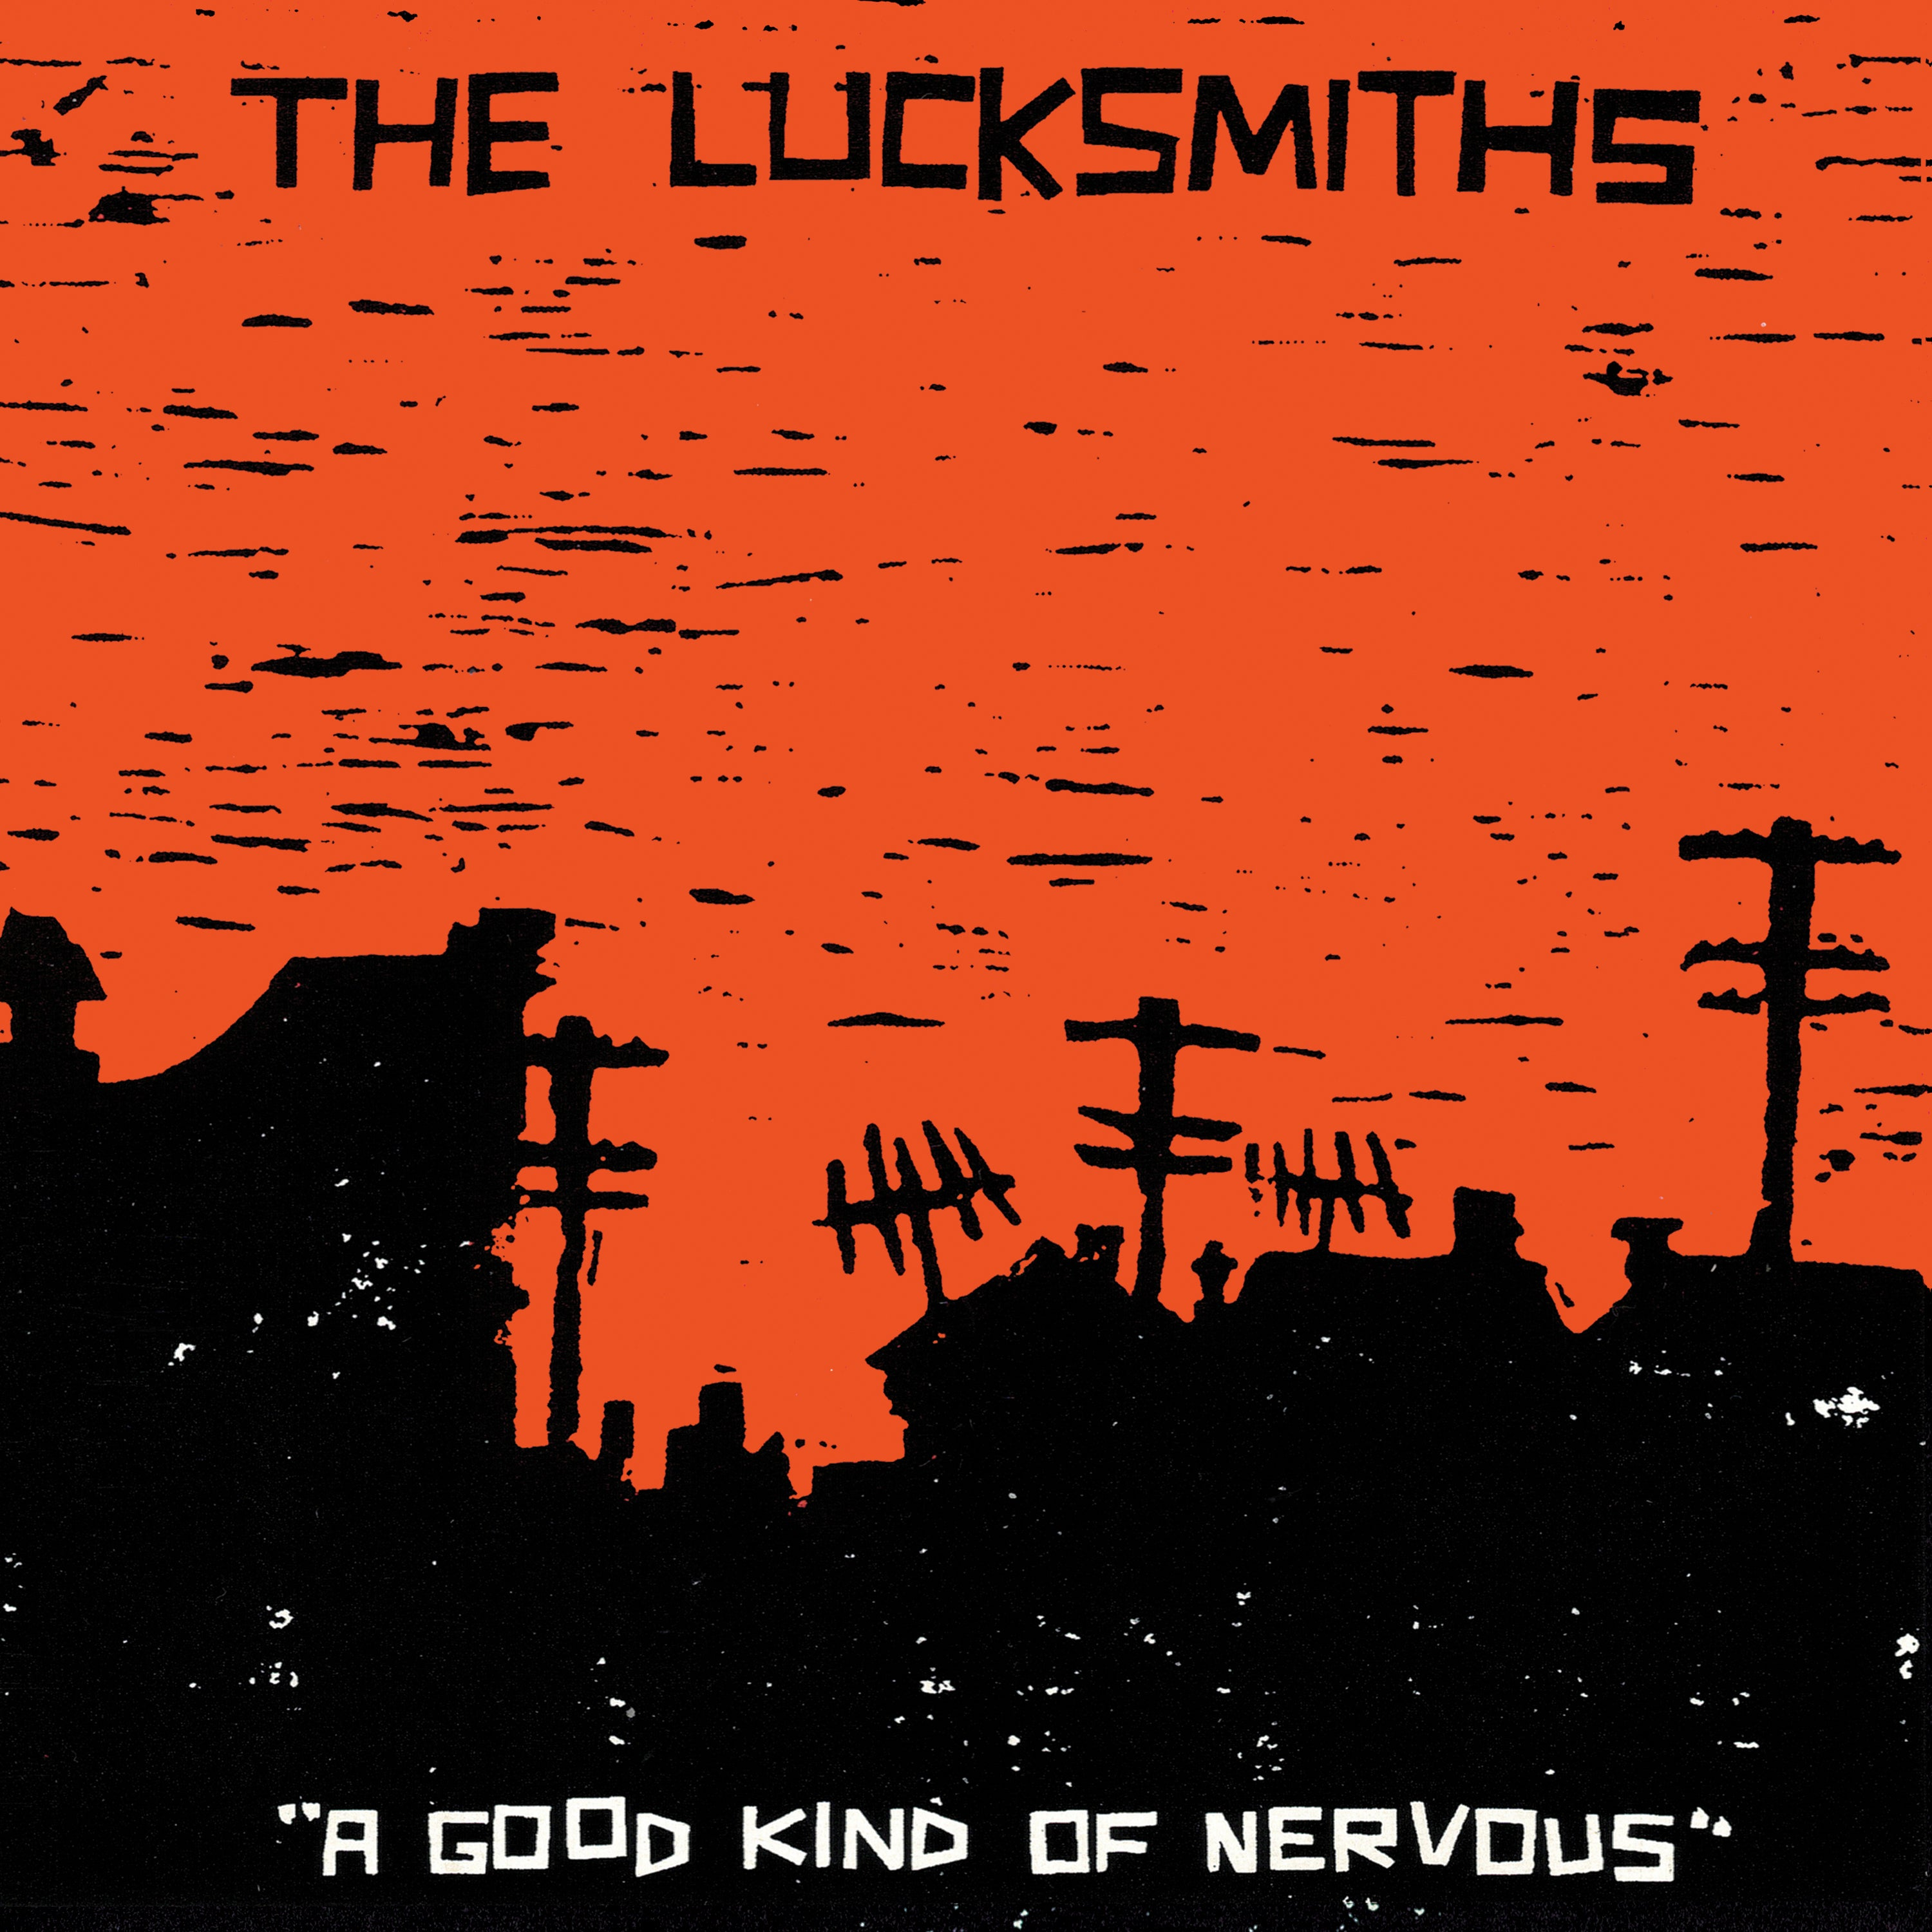 Lucksmiths, The - A Good Kind of Nervous